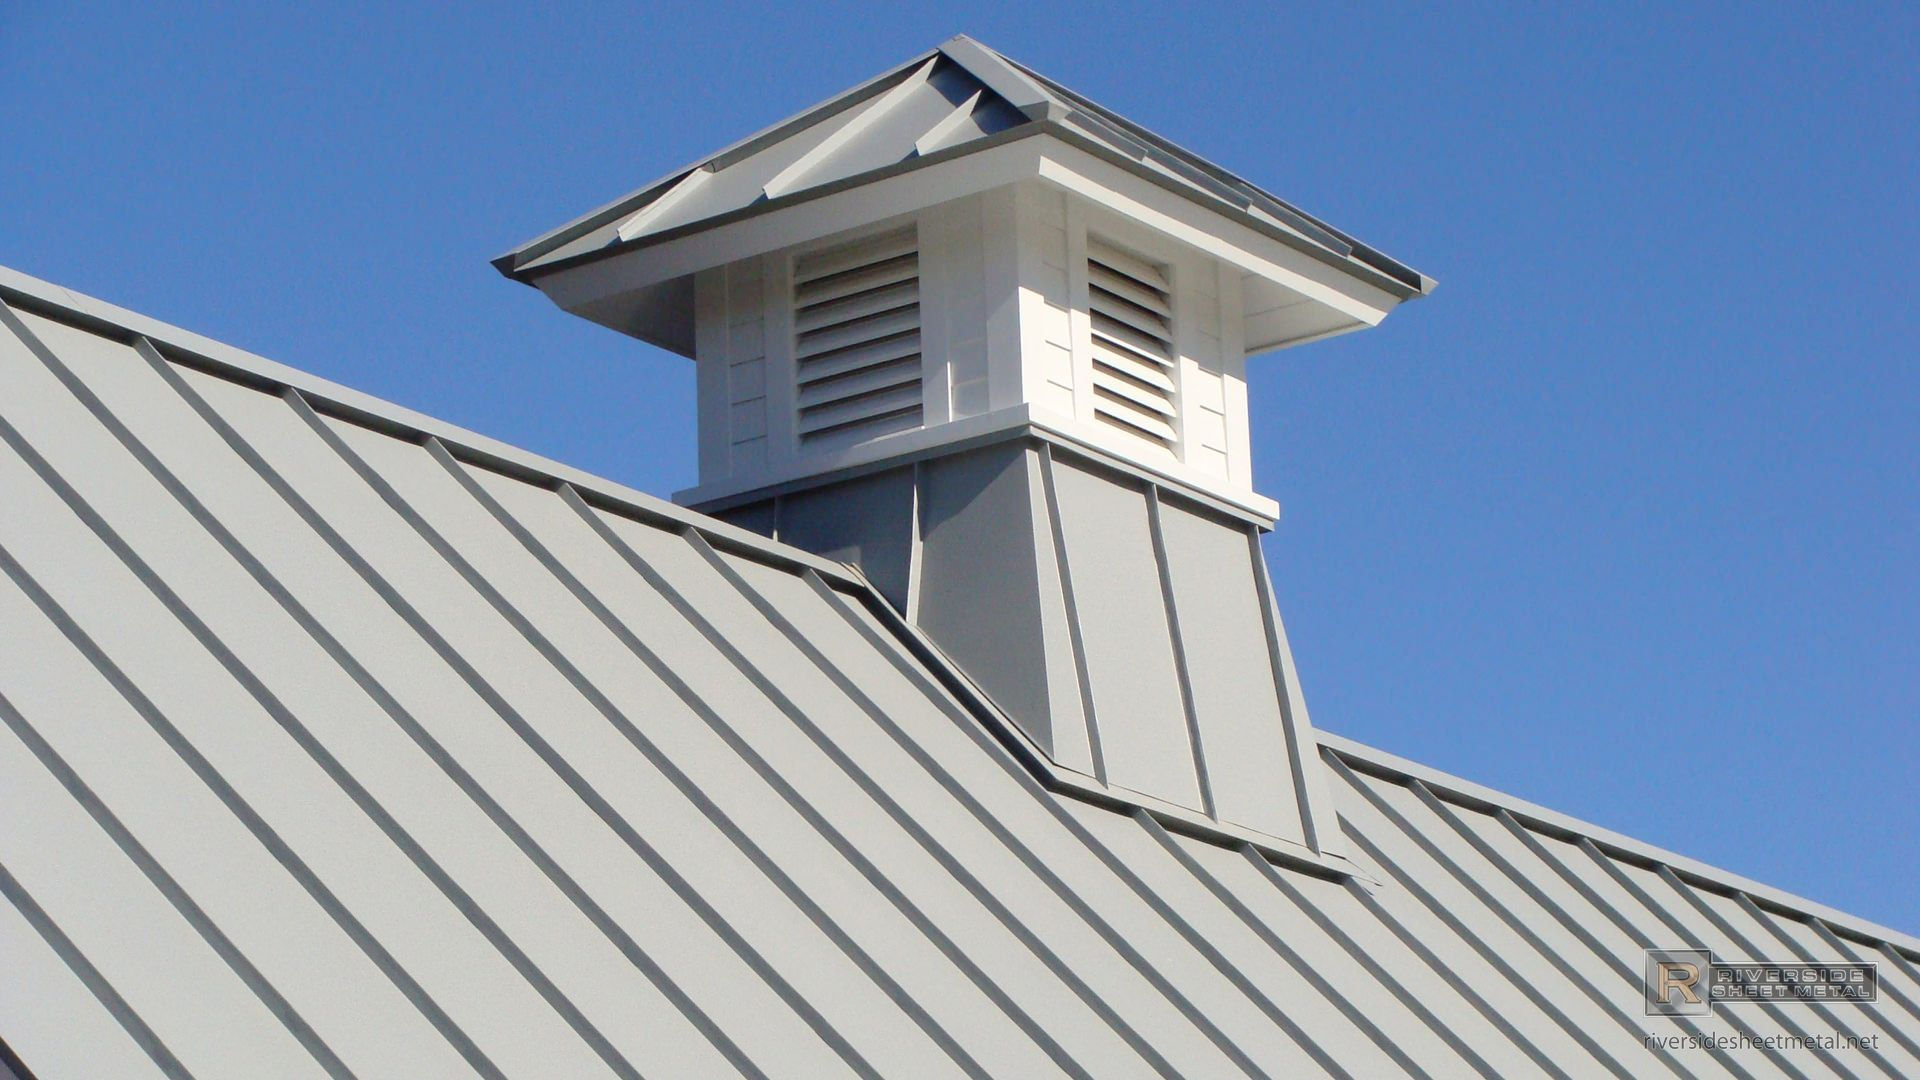 Angled Aluminum Roof Panels Metal Roofing Metal Roof Aluminum Roof Aluminum Roof Panels